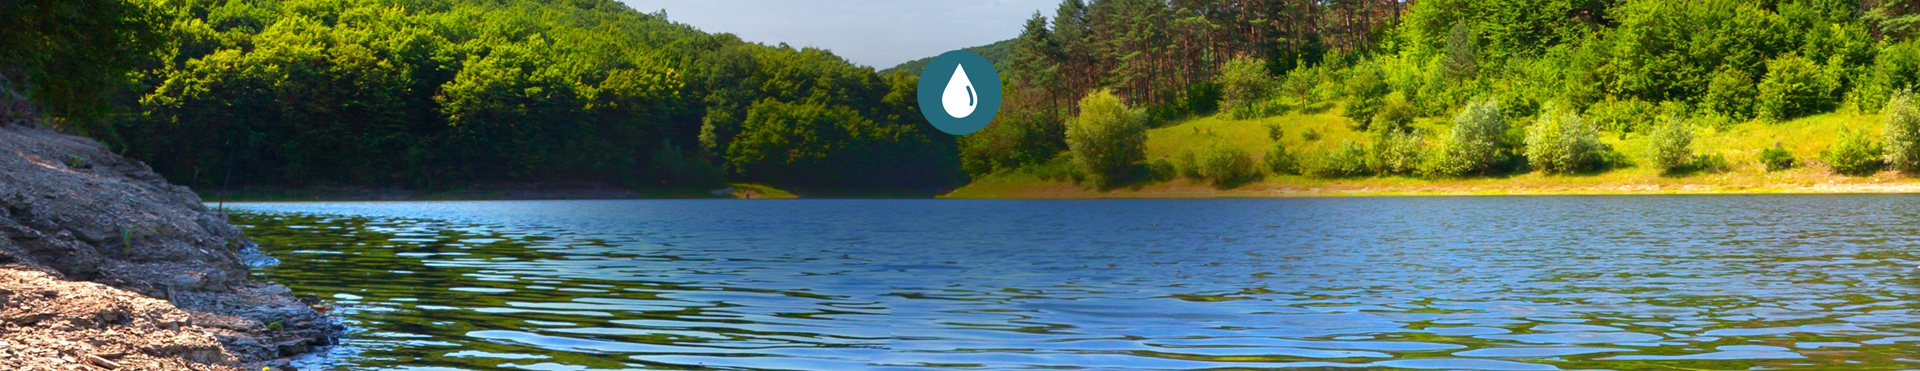 WATER BANNER-NEW